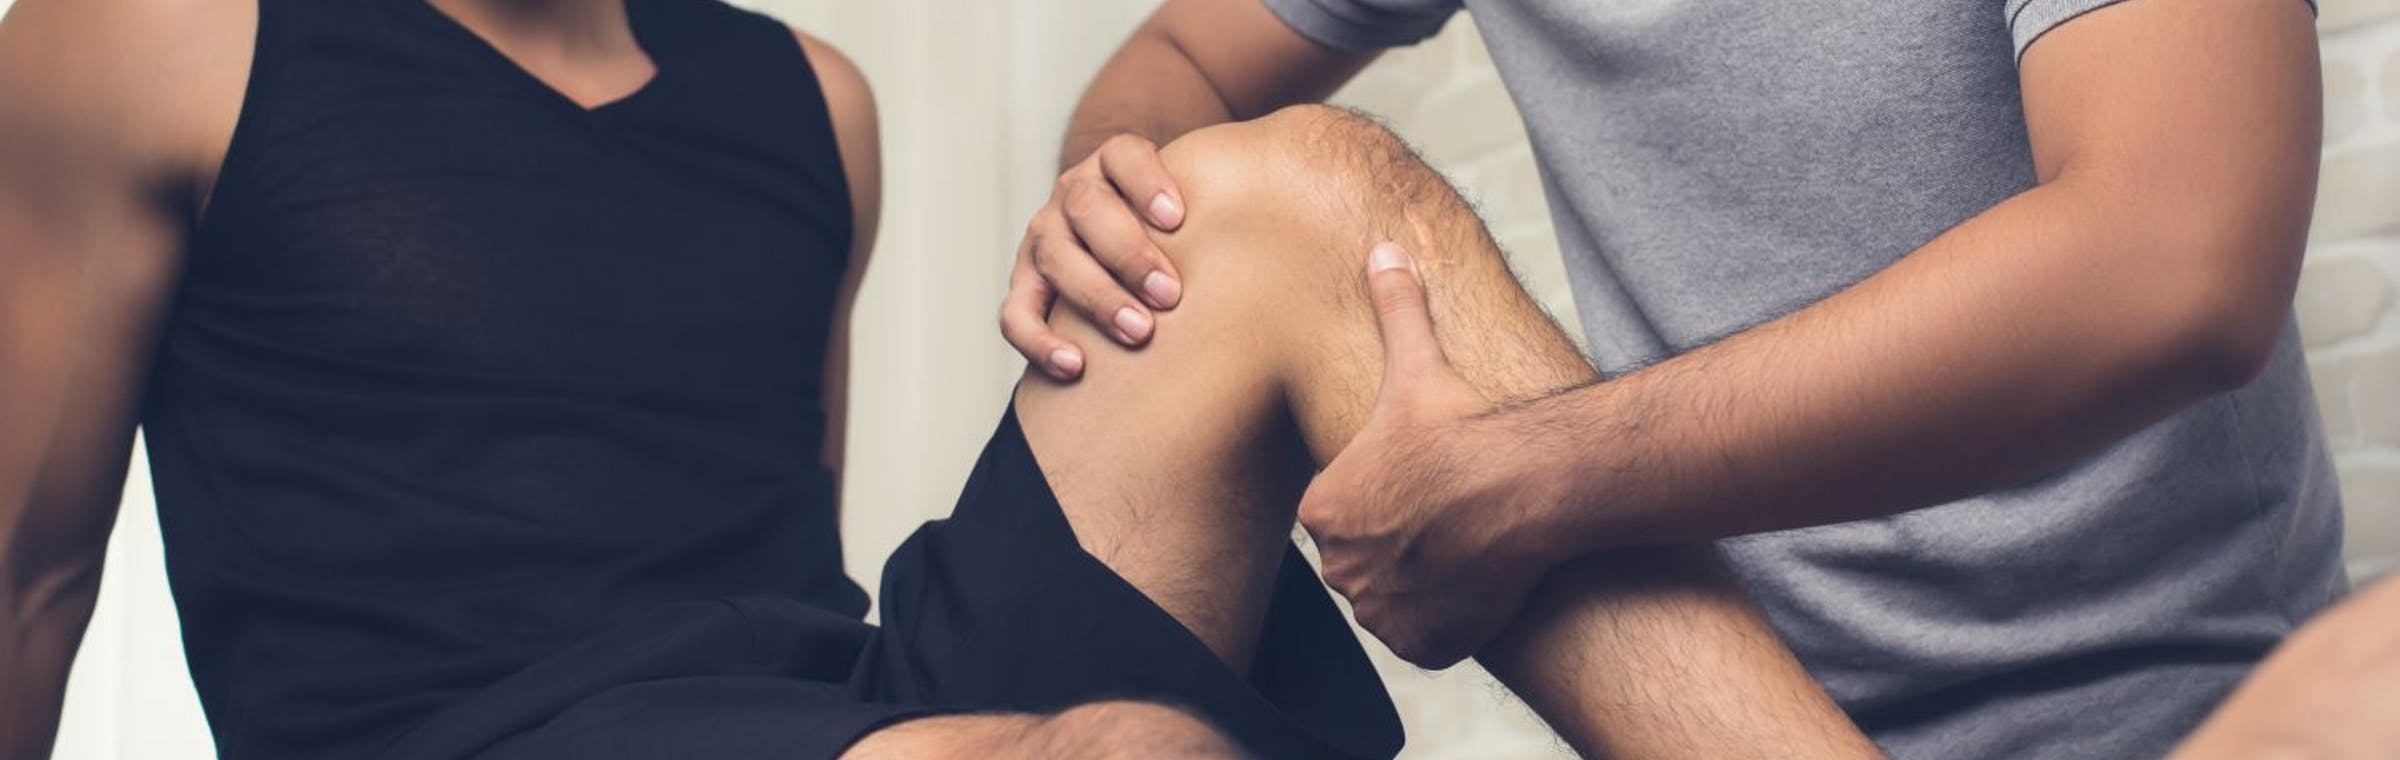 Physical Therapy Houston TX